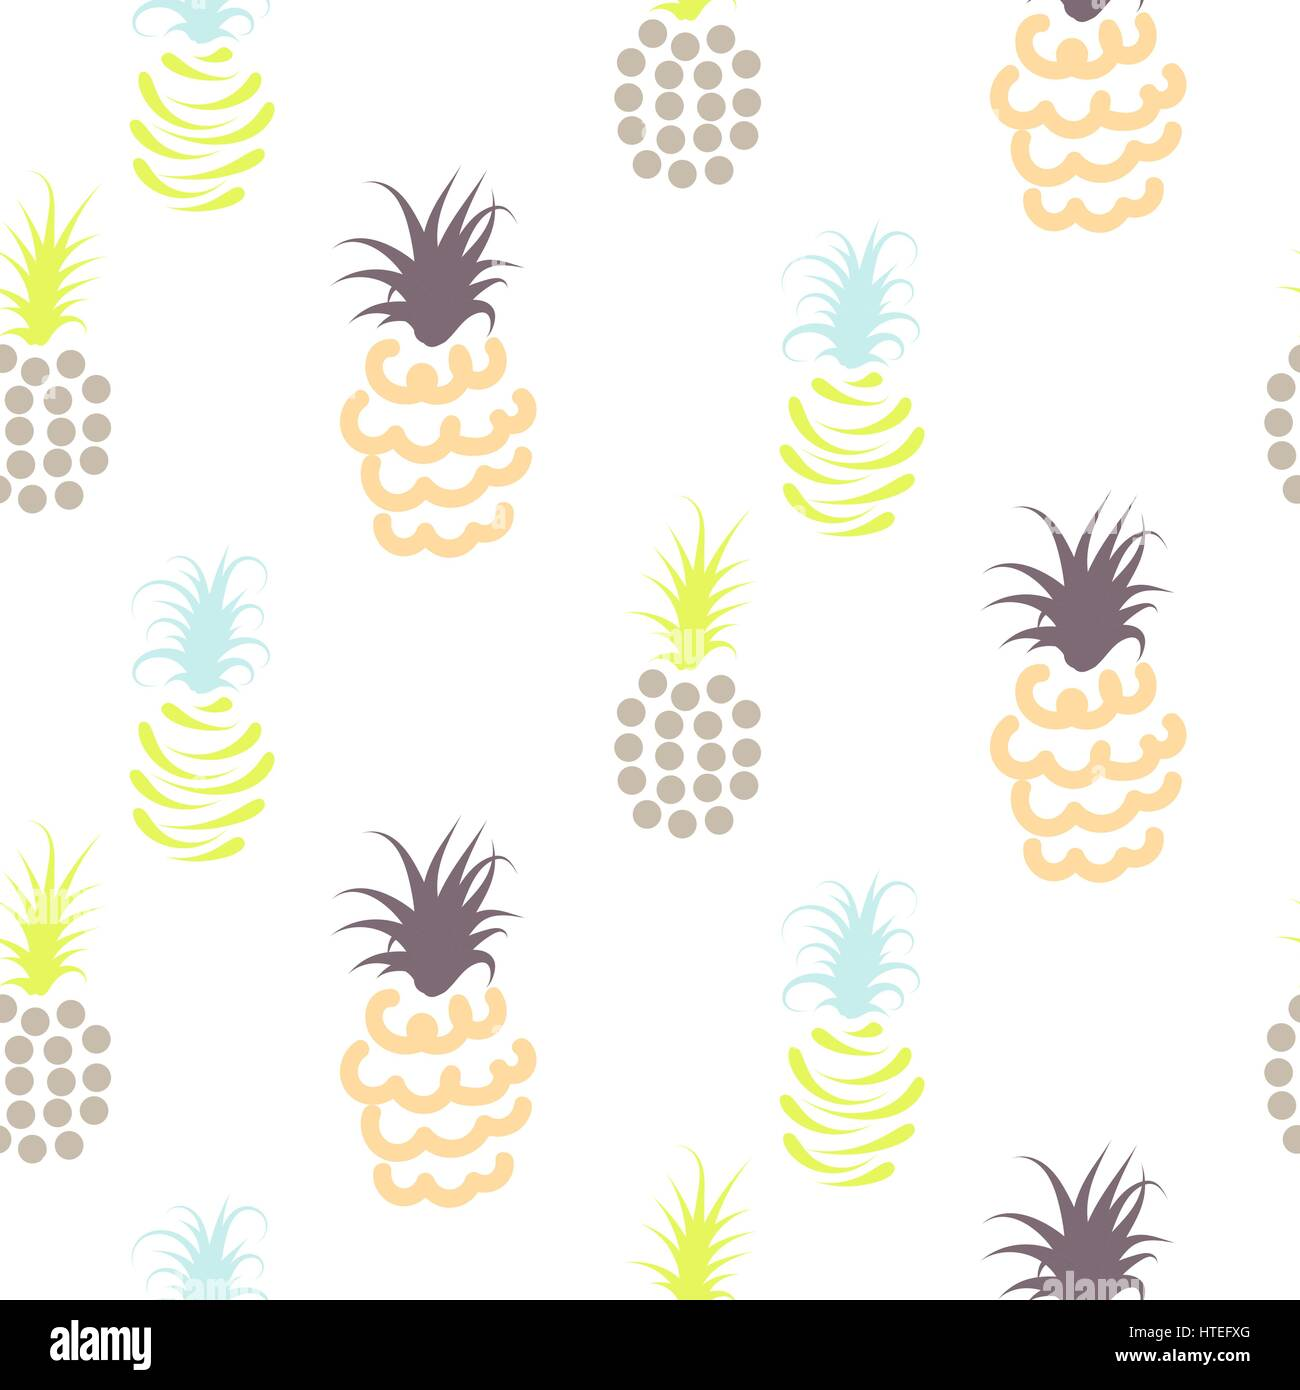 Abstract pineapple pastel colors pattern. Light baby ananas seamless surface texture design for nursery child apparel. - Stock Vector